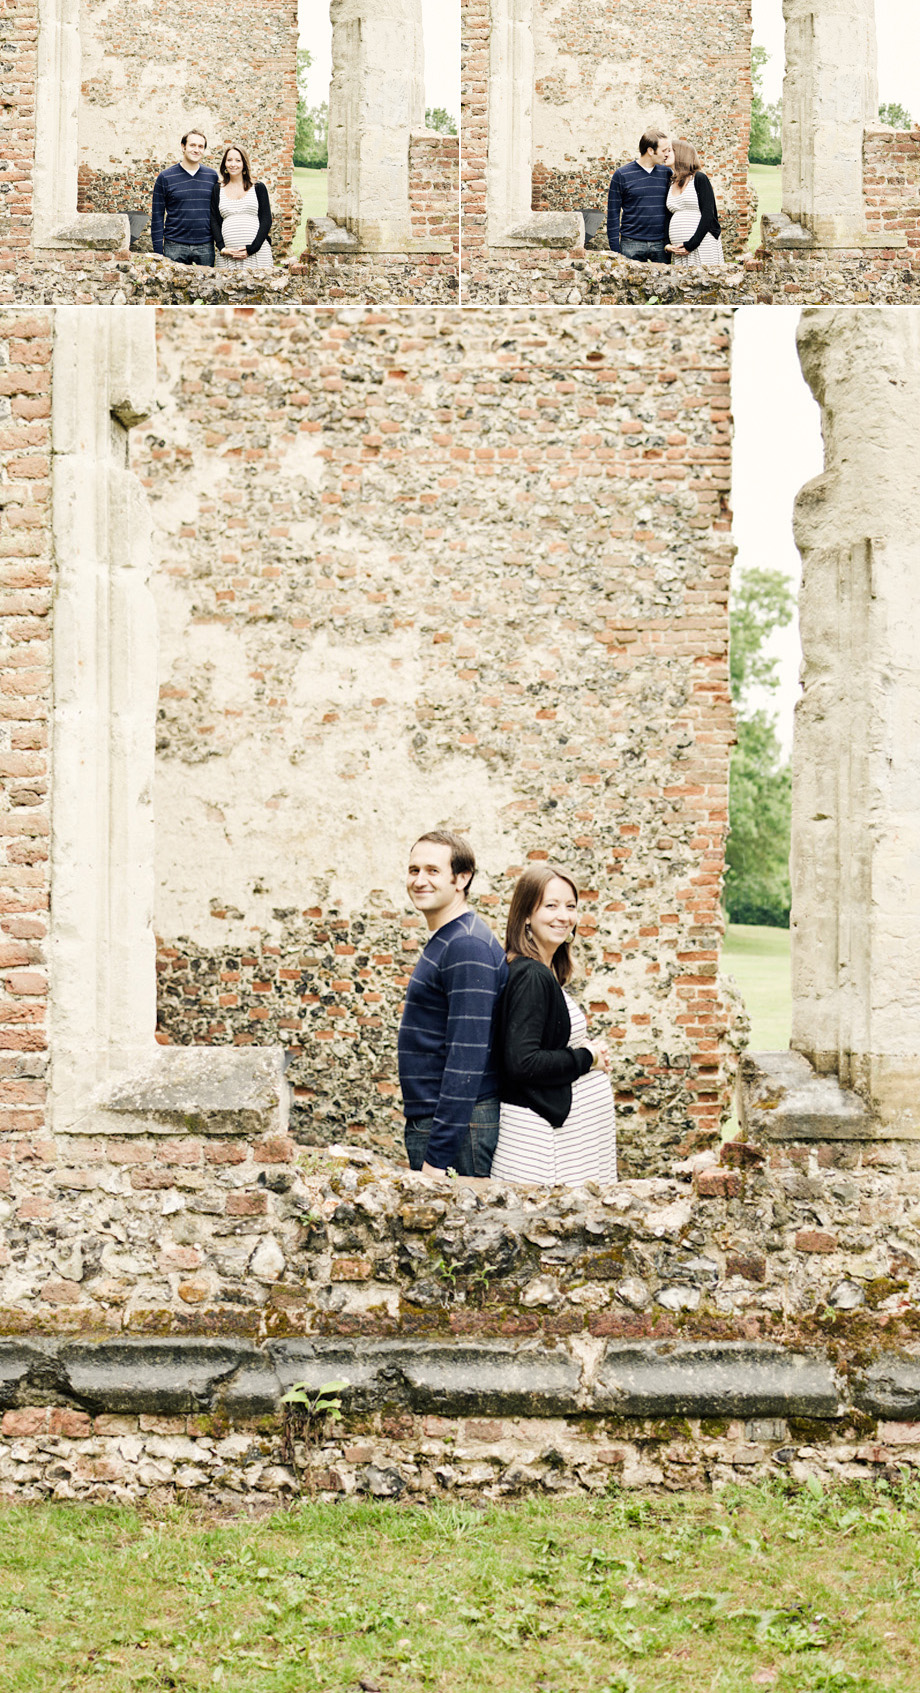 St Albans baby bump photography session